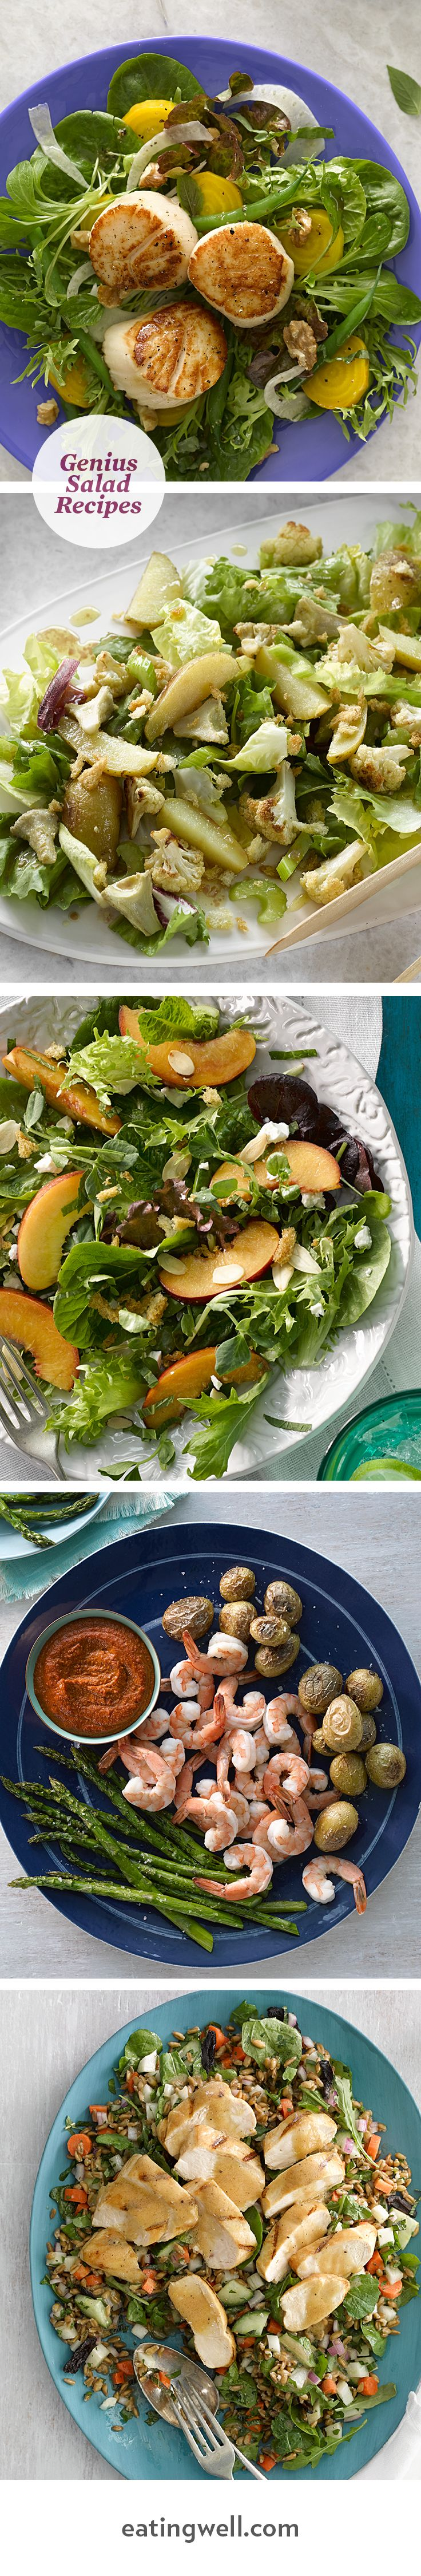 Fresh seasonal produce offers plenty of reasons to try one of our deliciously satisfying salad recipes for dinner.